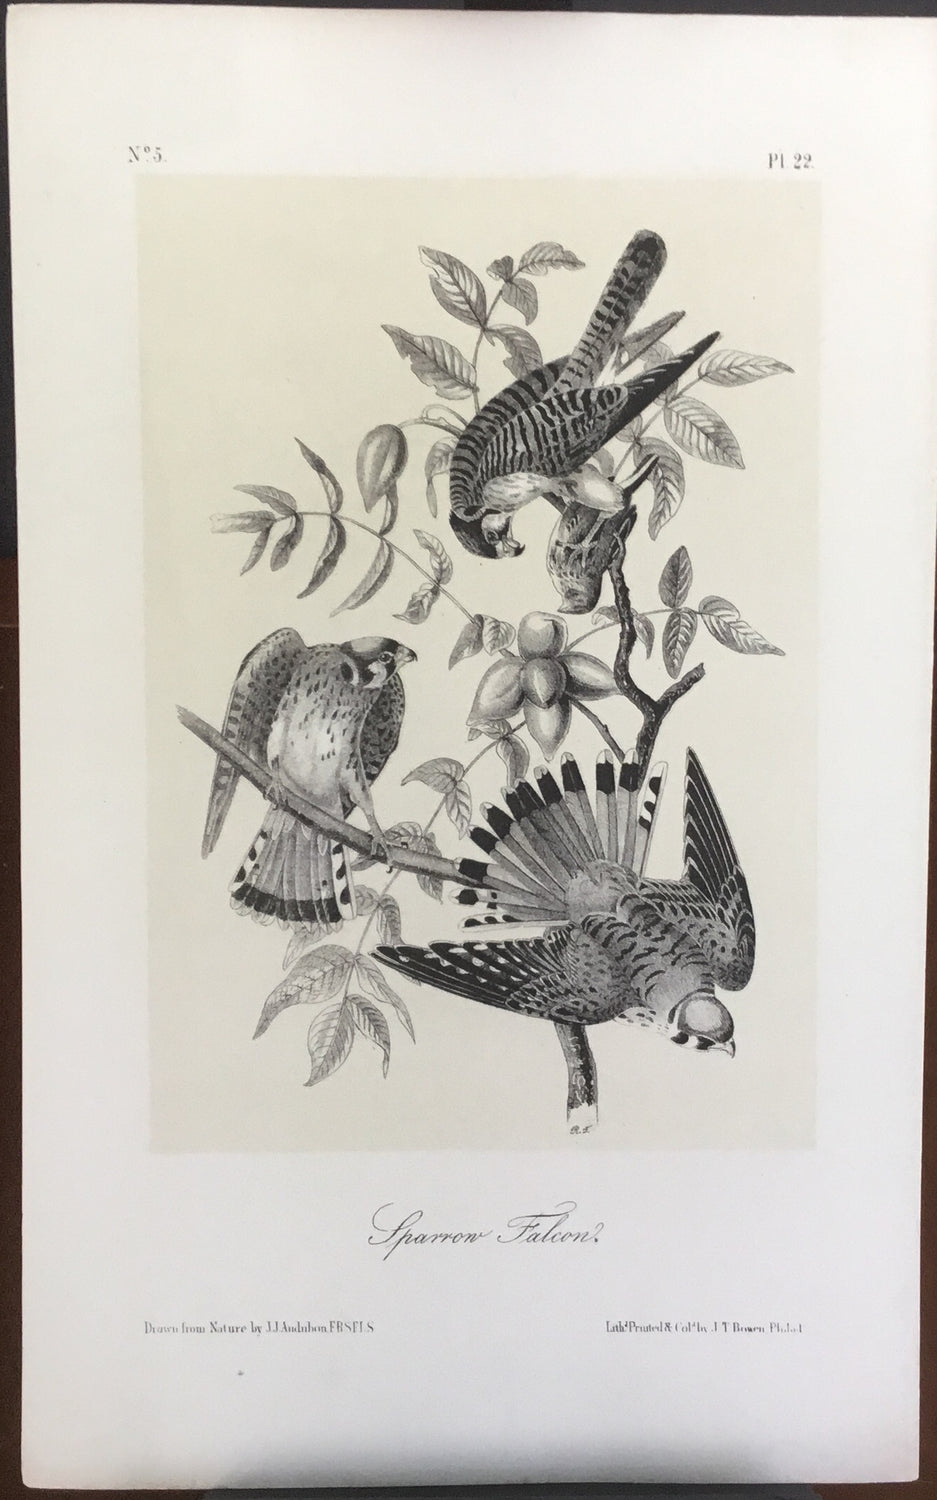 Audubon Octavo Sparrow Falcon plate 22 x uncolored test sheet. 7 x 11